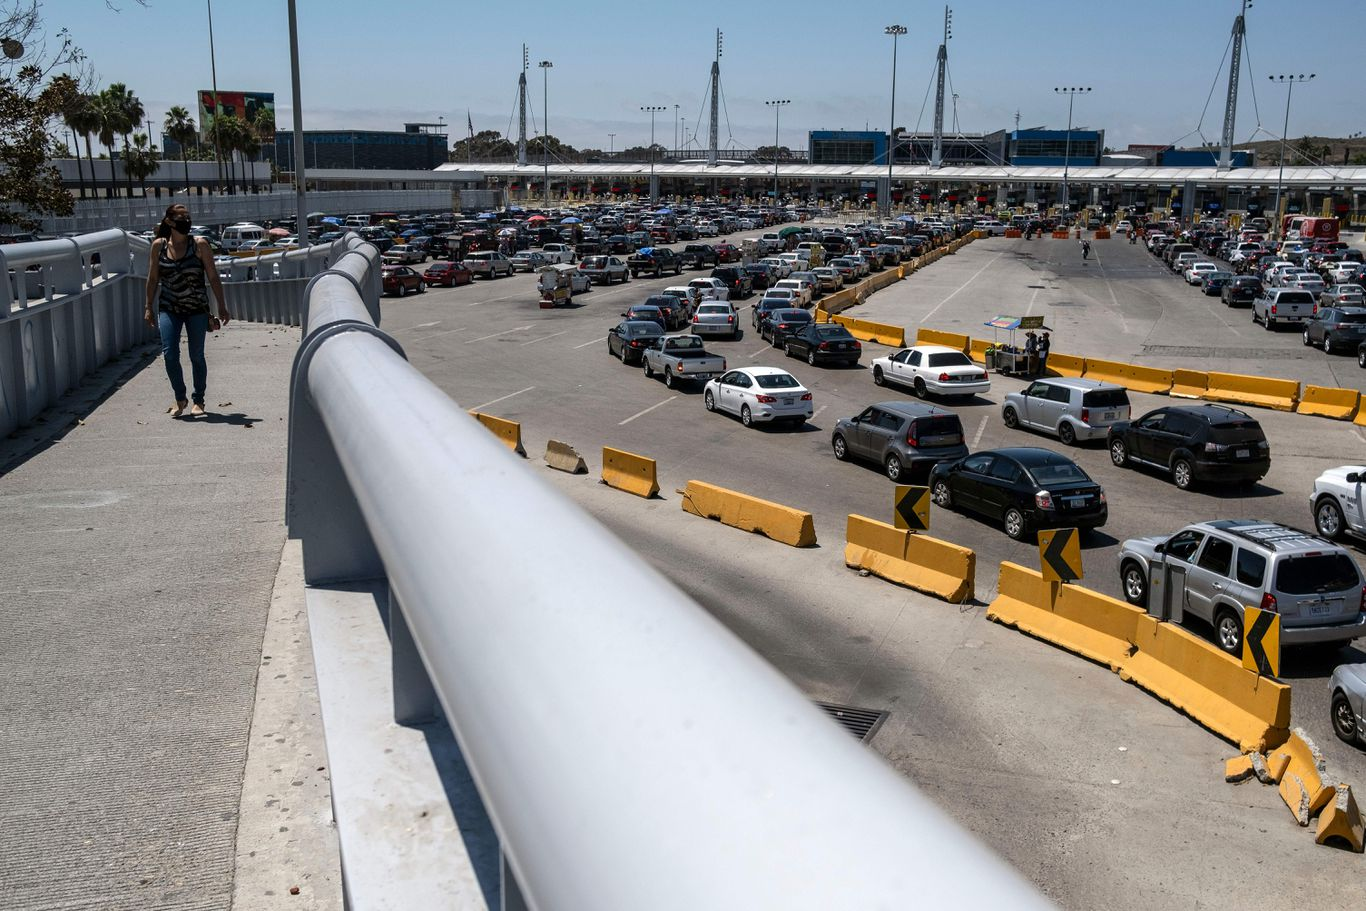 Mexican leaders call for tighter border control as COVID-19 cases increase in U.S.